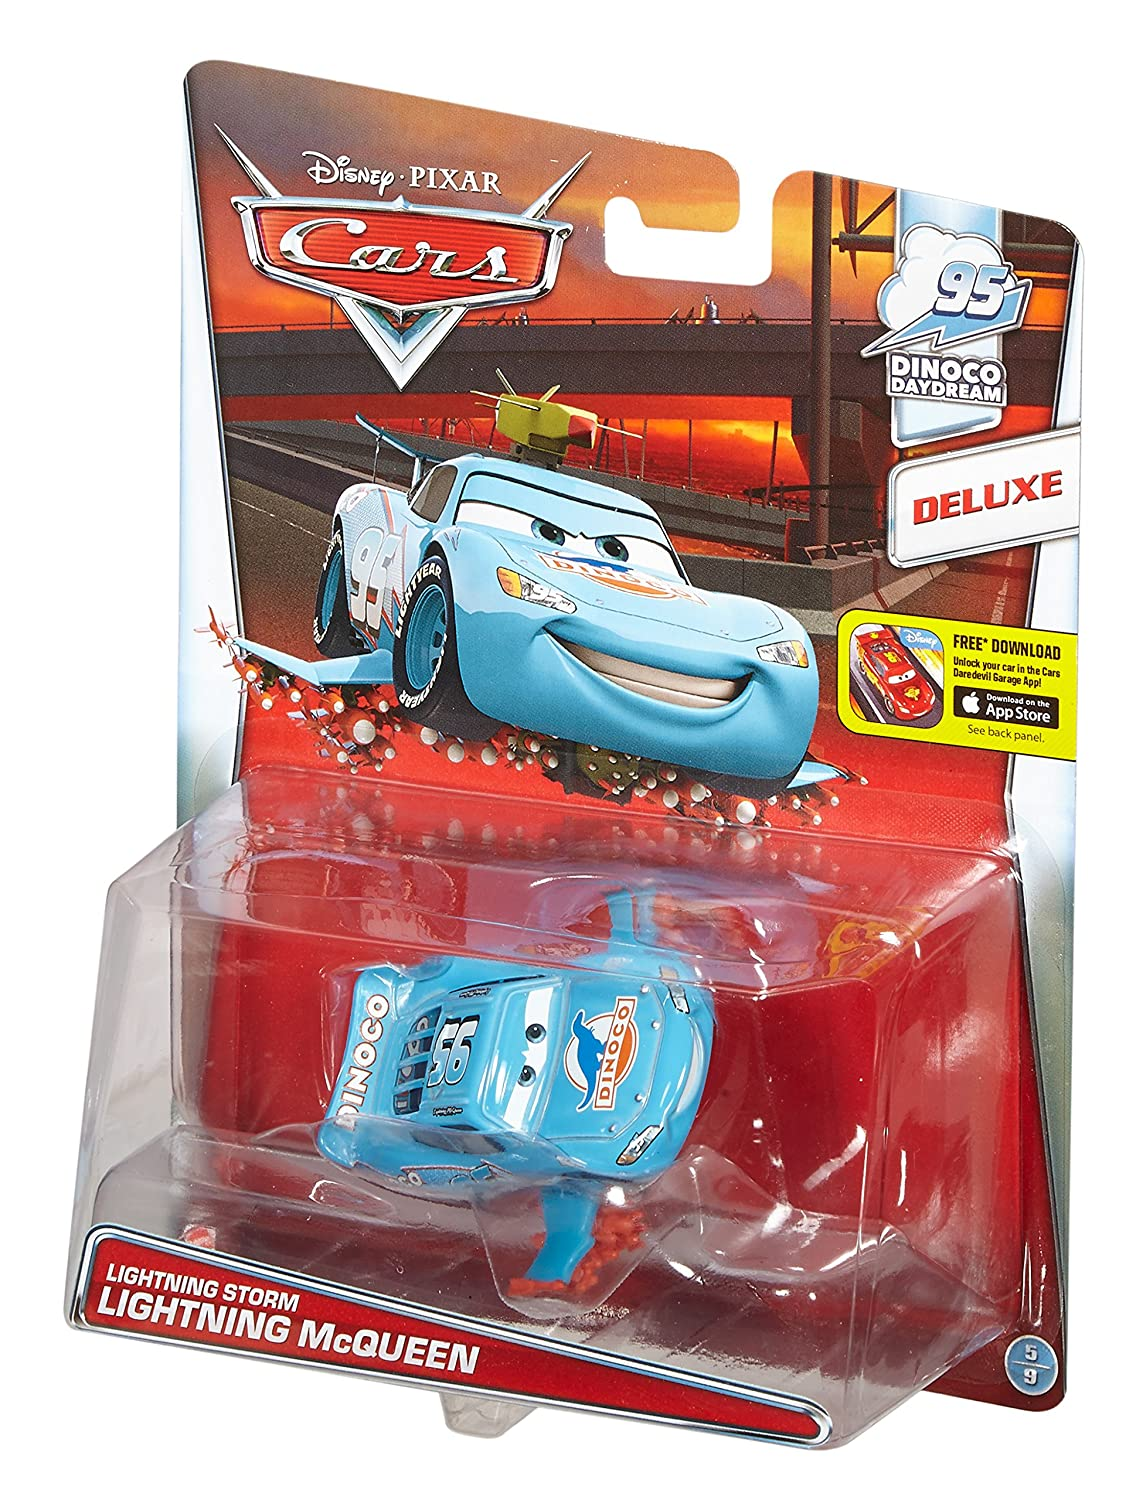 Amazon Disney Pixar Cars Lightning Storm Lightning McQueen